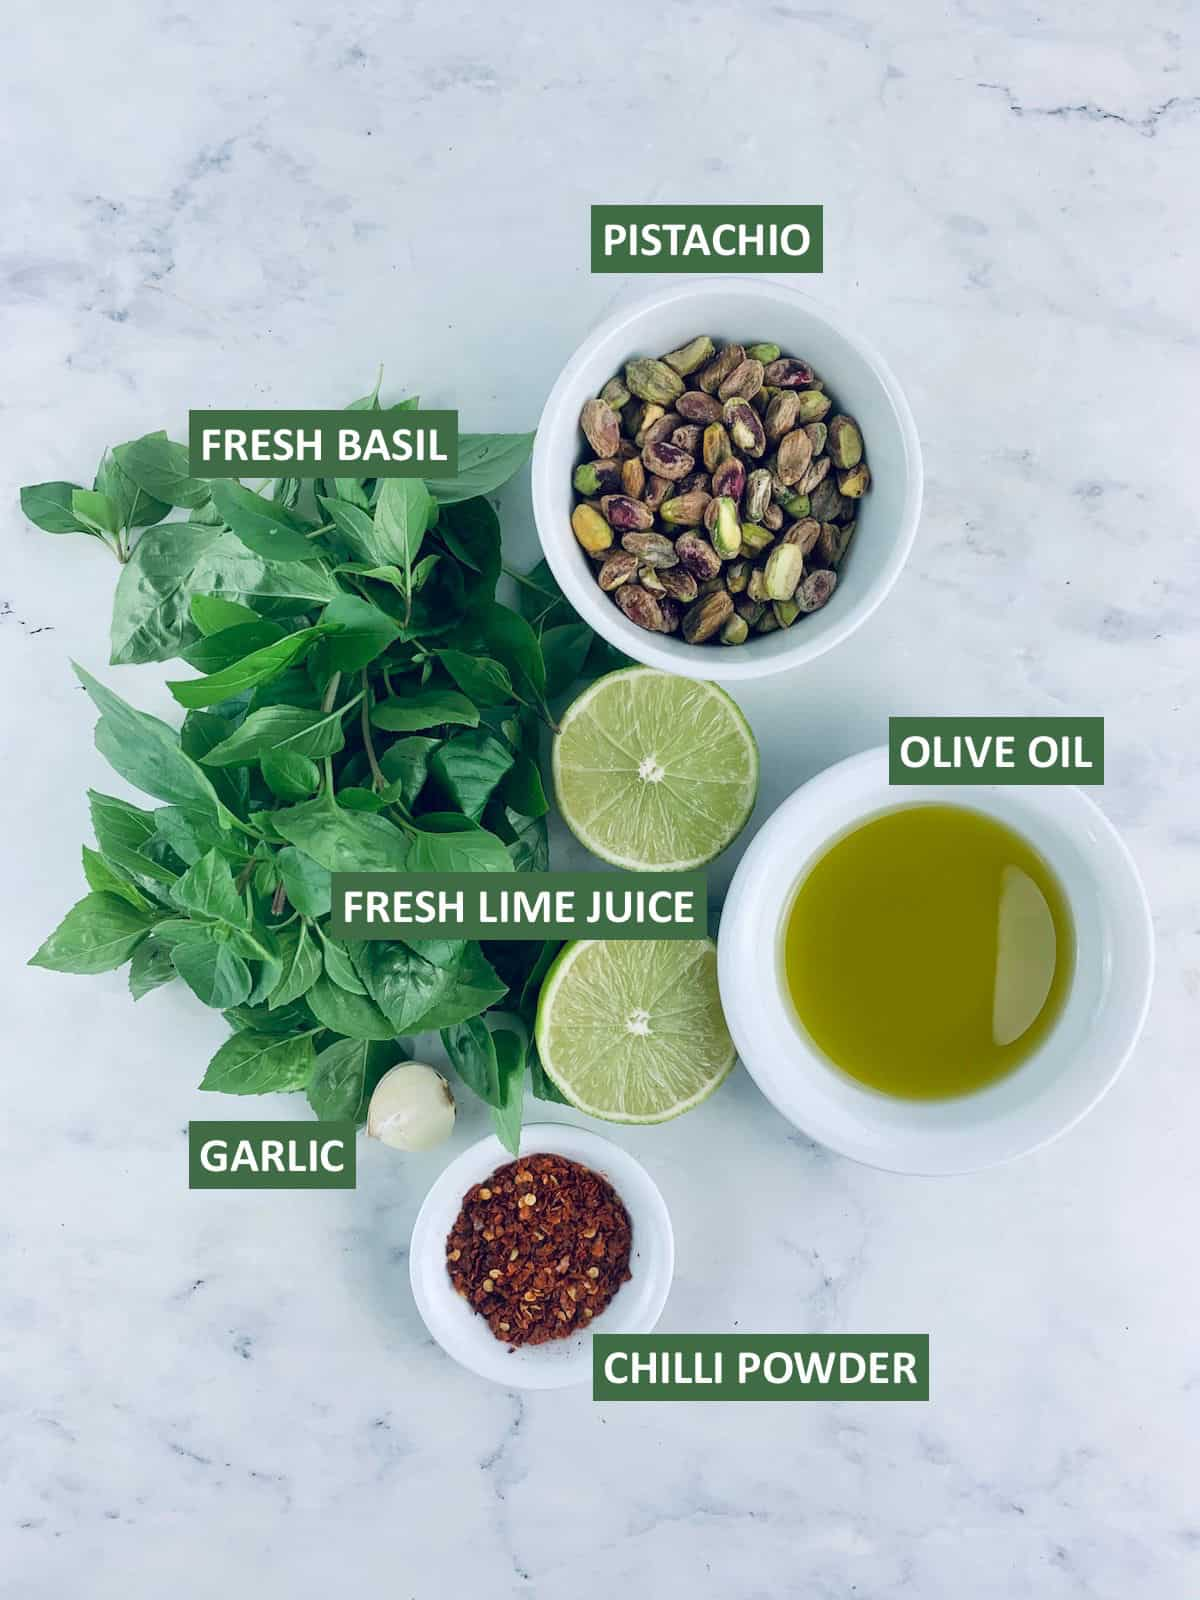 LABELLED INGREDIENTS NEEDED TO MAKE PISTACHIO DRESSING